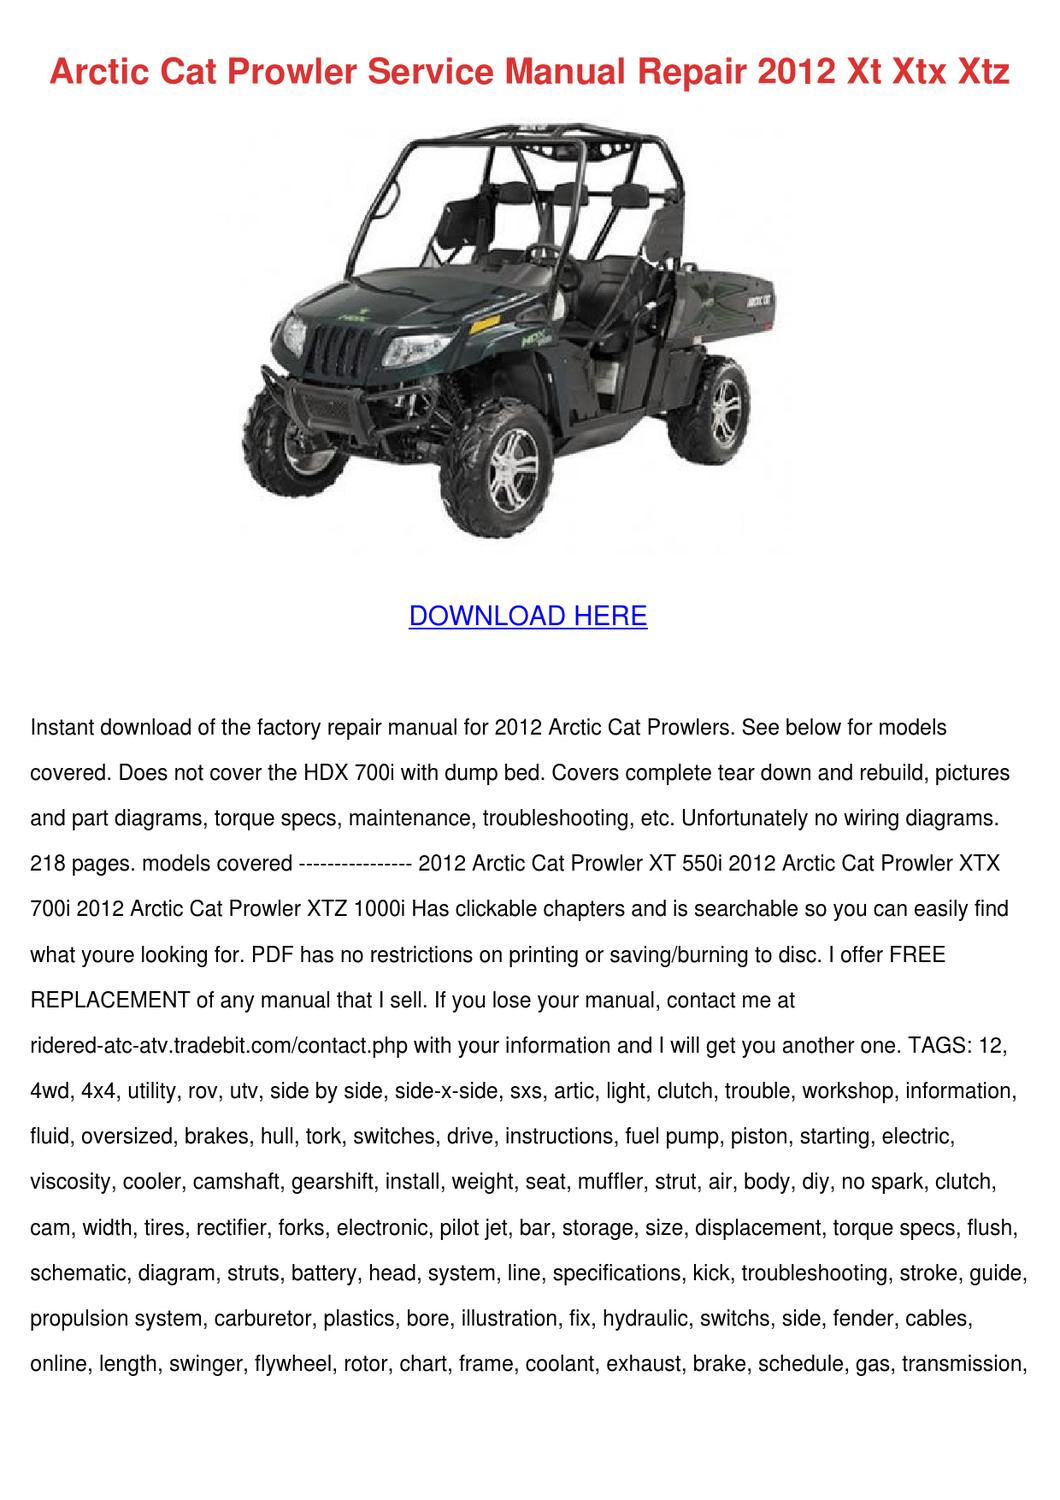 Arctic Cat Prowler Service Manual Repair 2012 By Princess Smoley Issuu